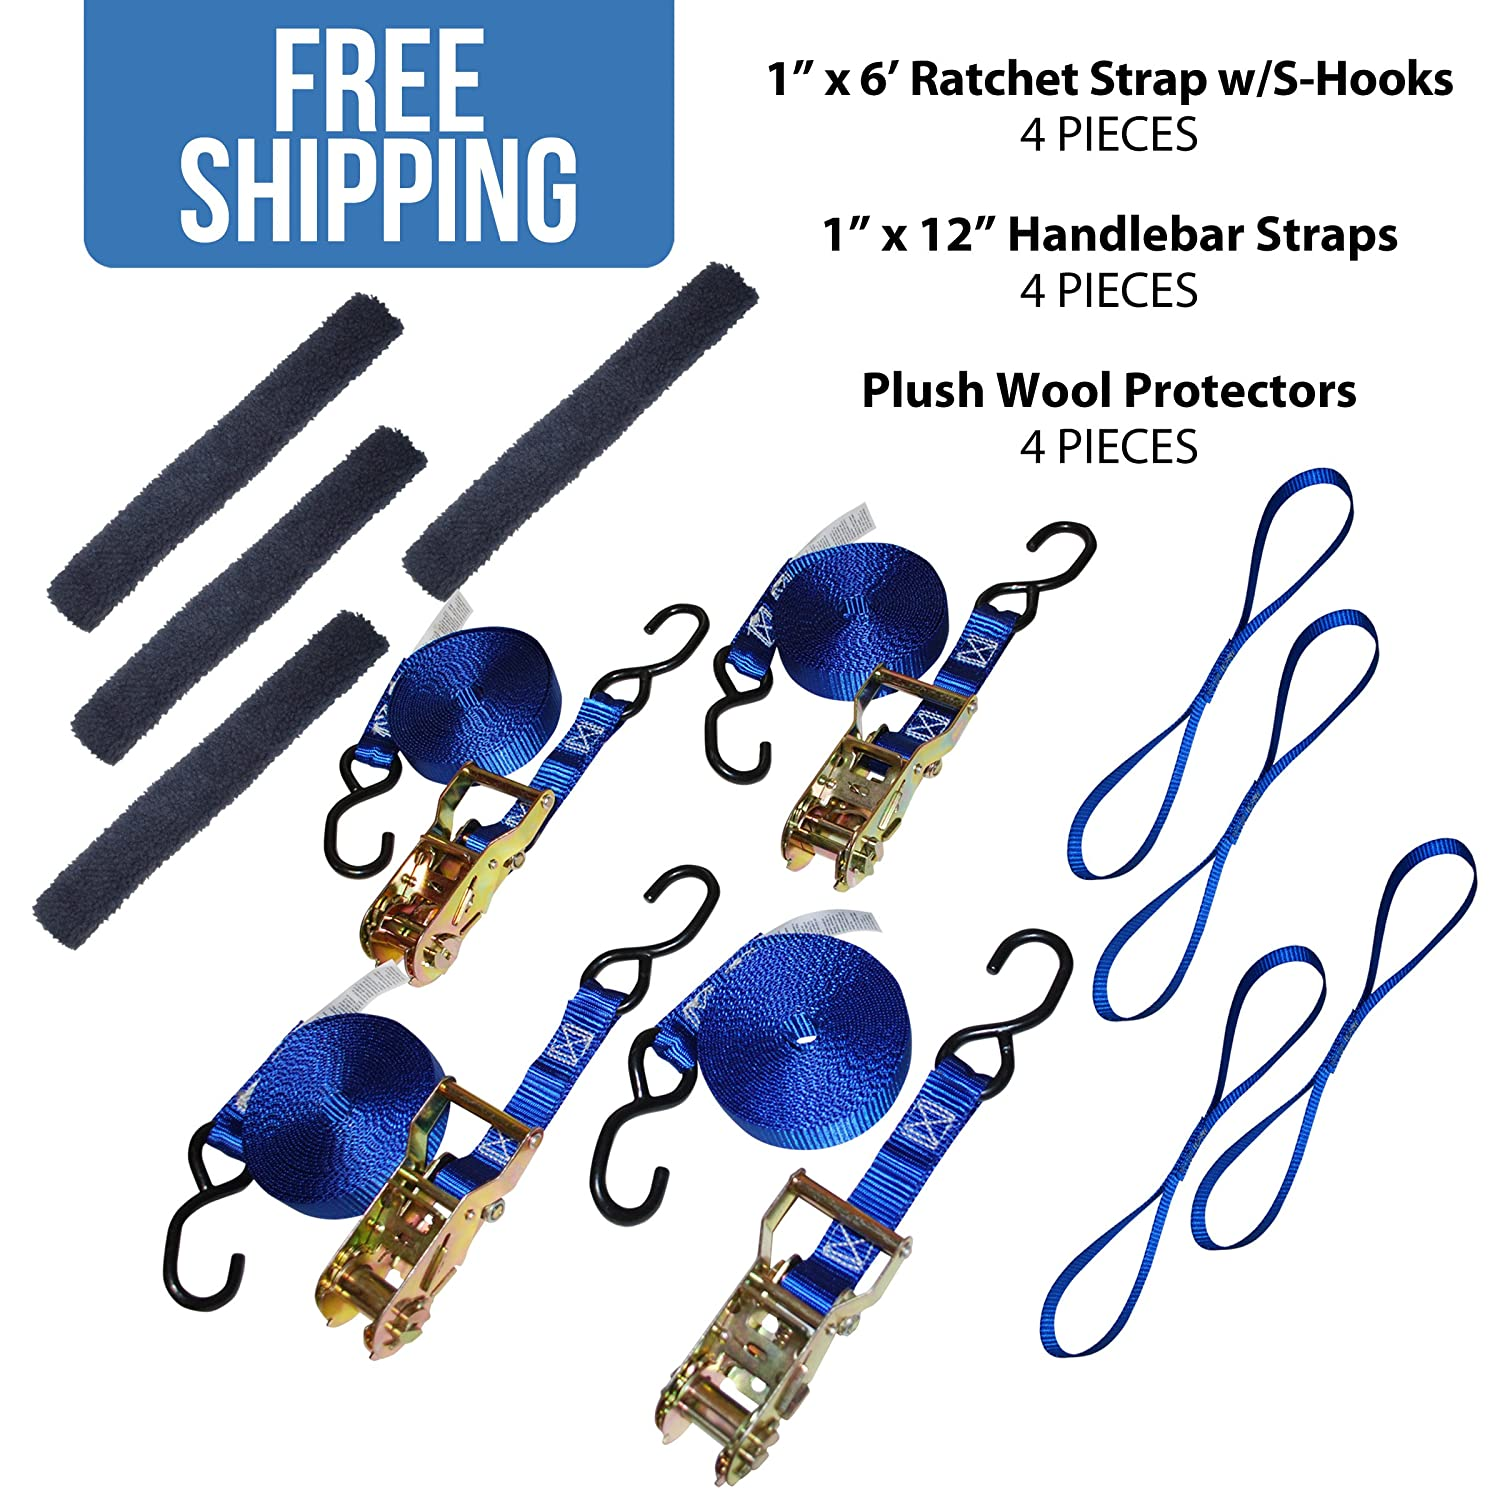 Plush Wool Protector for Ratchet and Tie Down Straps Shippers Supplies 4 Pack